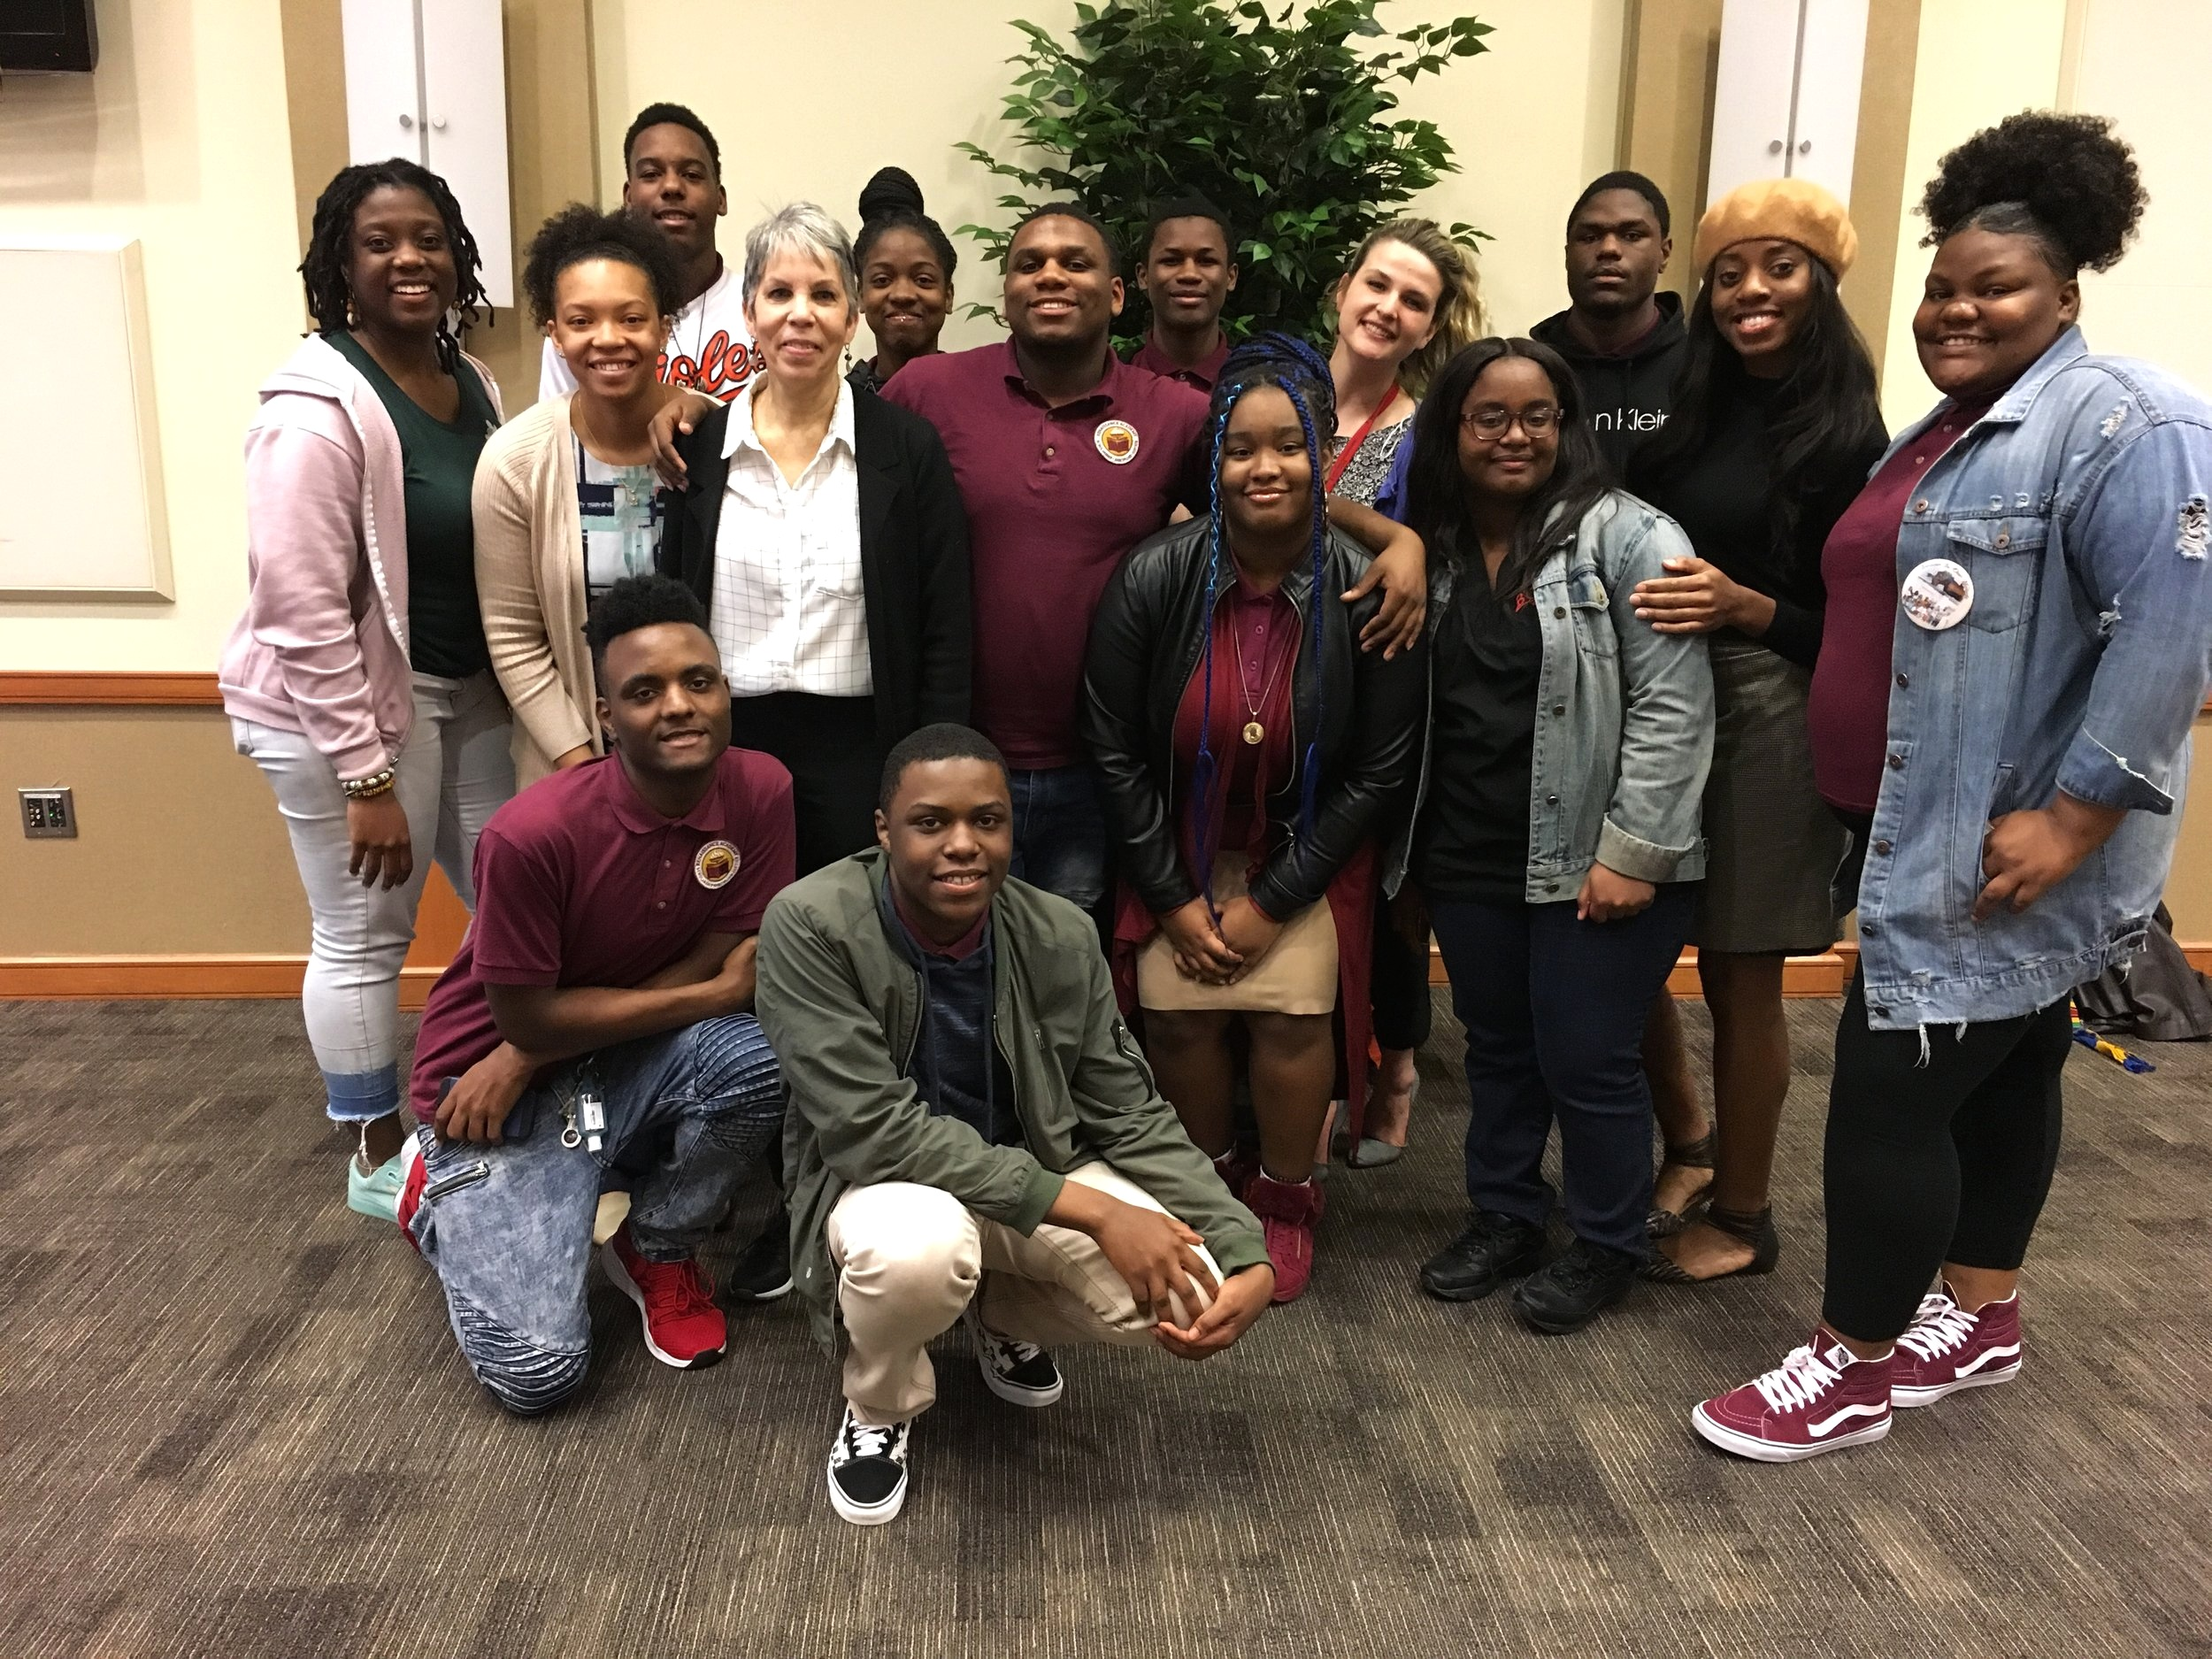 Students from Renaissance Academy High School and staff including Promise Heights College and Career Coordinator, Shirley Green (second to the left) and Promise Heights Director, Bronwyn Mayden (third to the left) gather for a group photo following the etiquette dinner at the University of Maryland, Baltimore Campus Center.